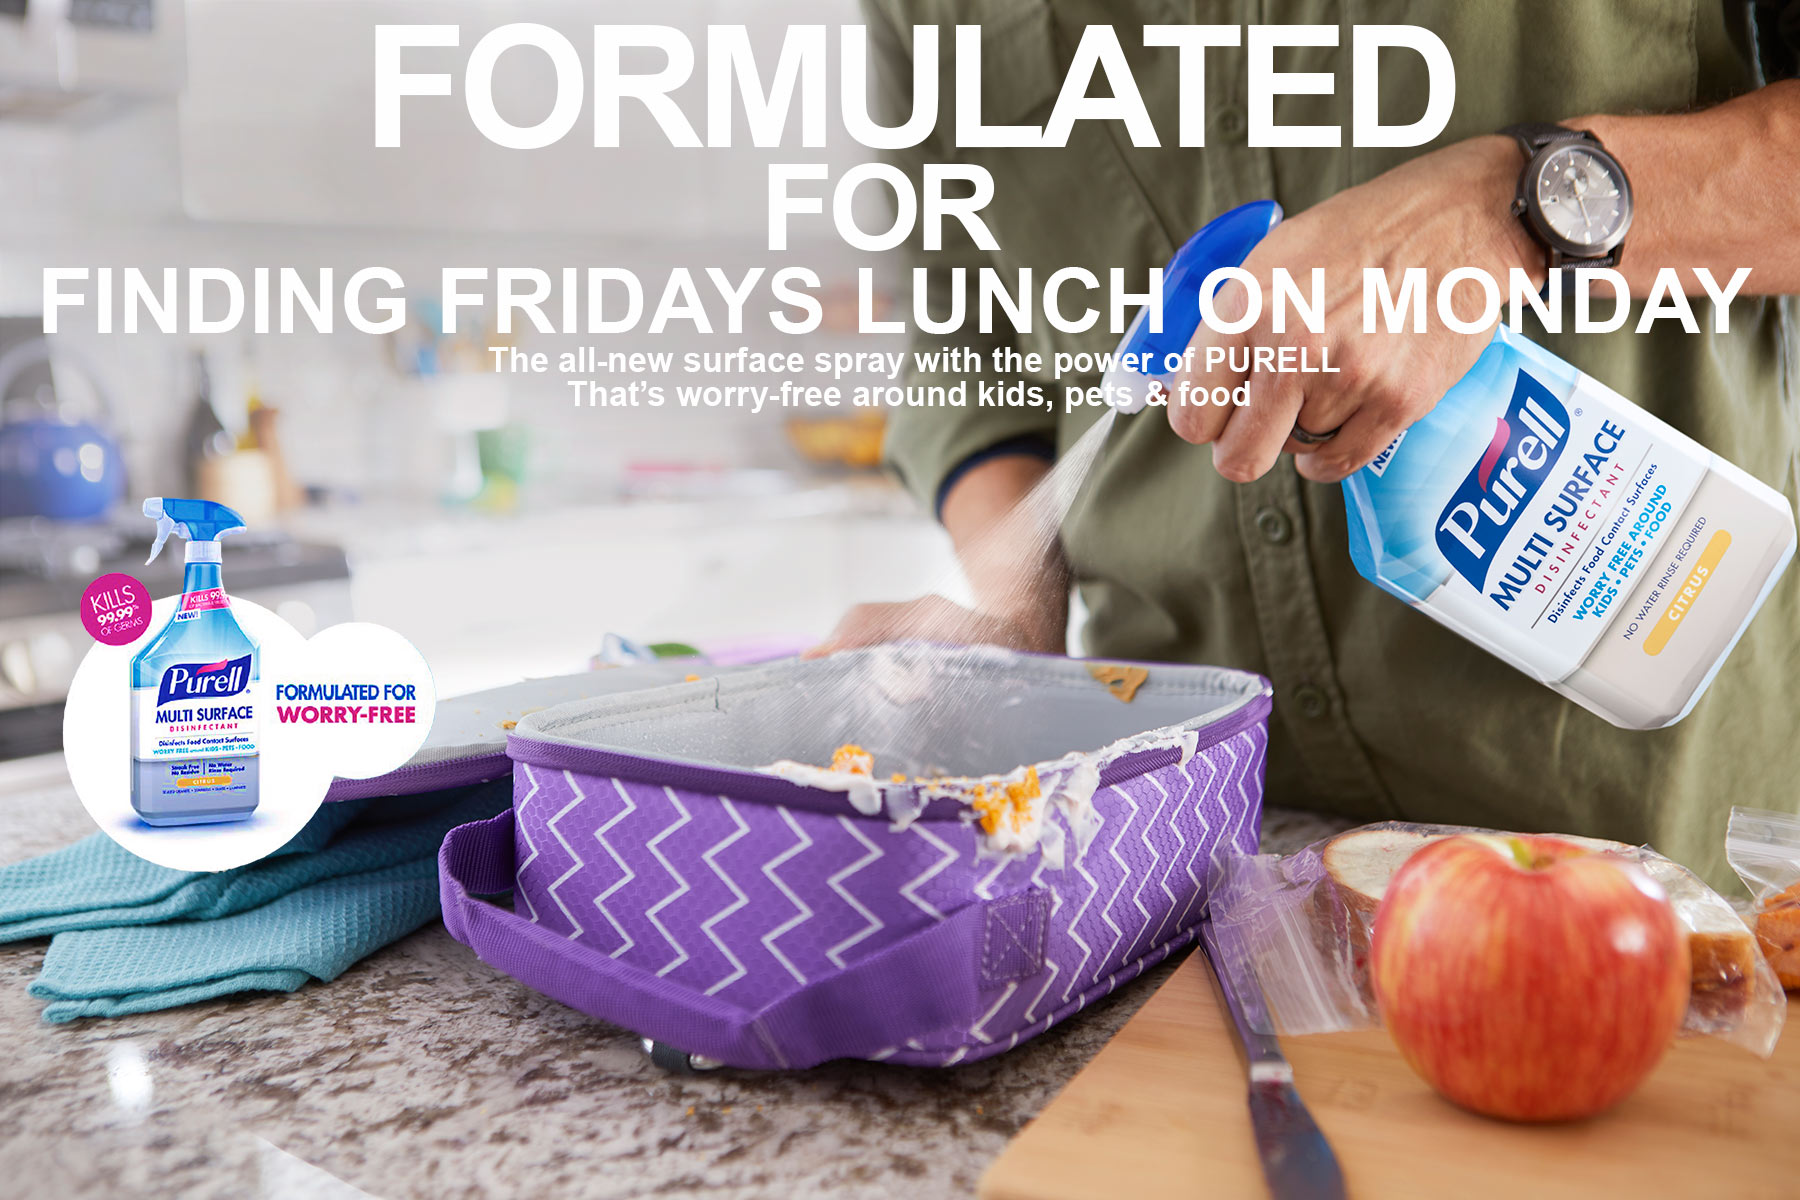 Purell_Lifestyle_Advertising_Photographer_Chicago_LA_Los_Angeles_Kitchen_Cleaning_Lunchbox_Kids_Spray_Bottle_Mike_Henry_Photo